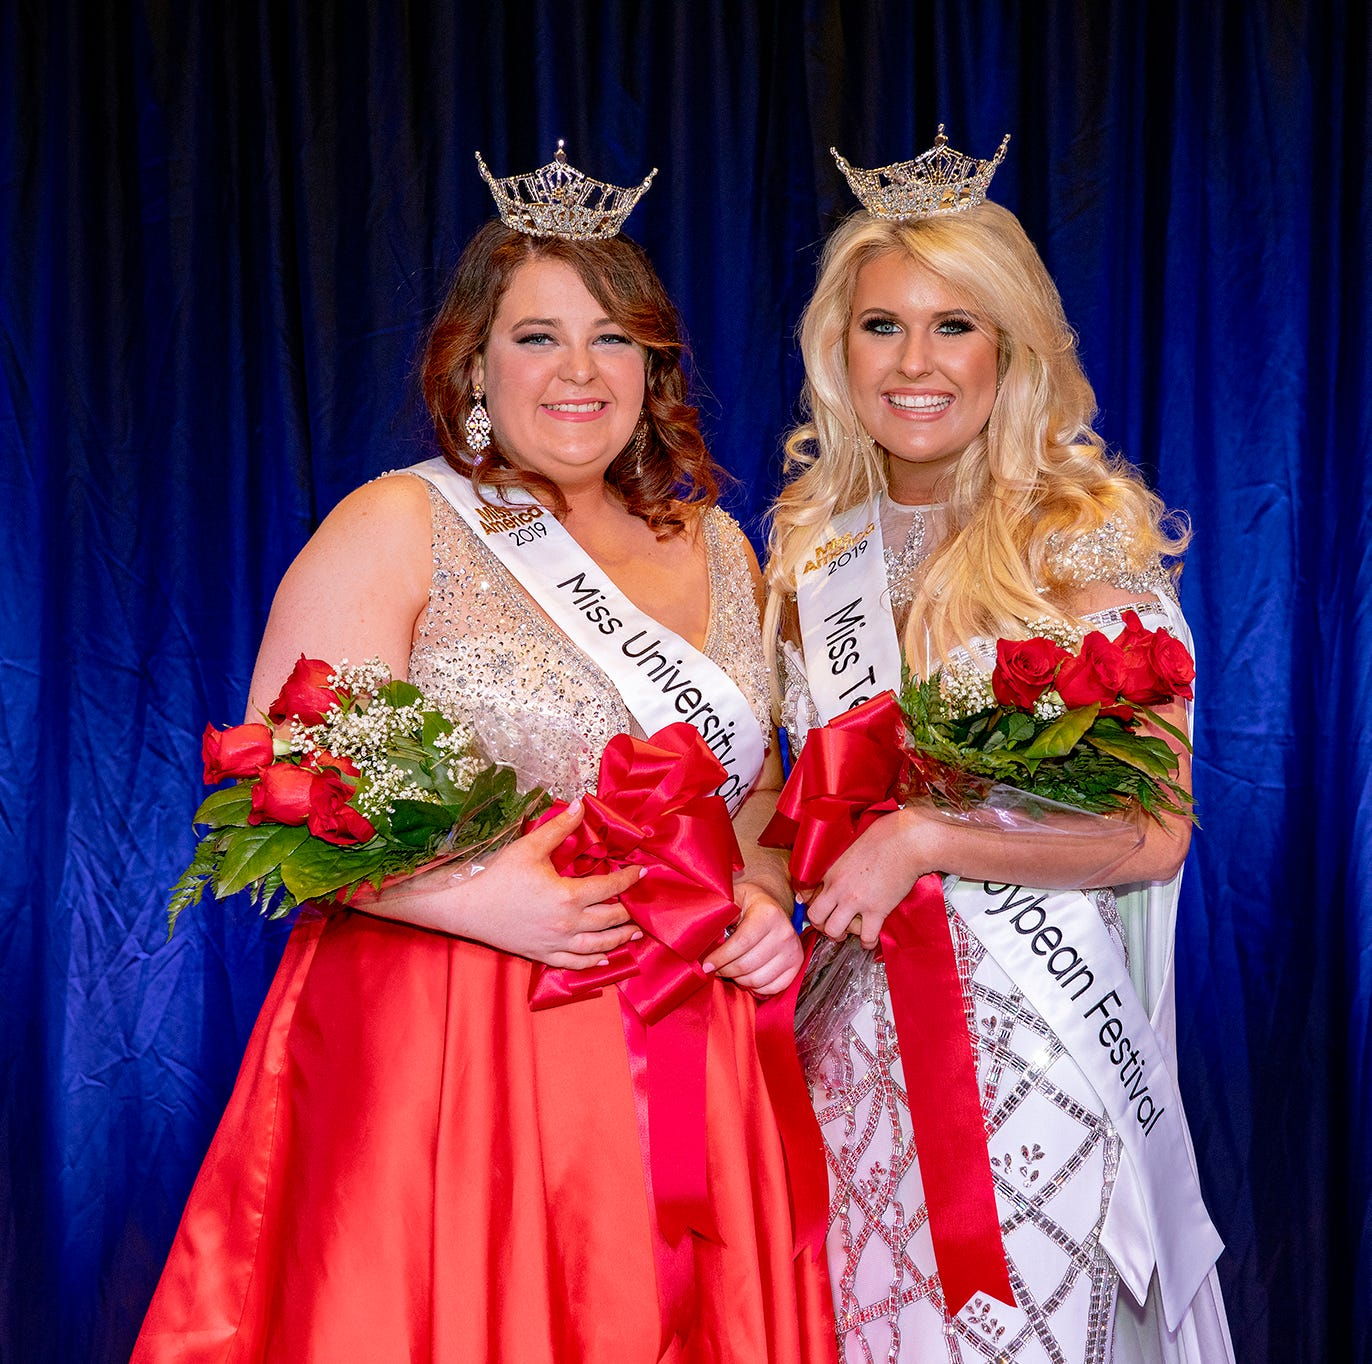 Contestants claim Miss UT Martin, Miss Tennessee Soybean Festival titles